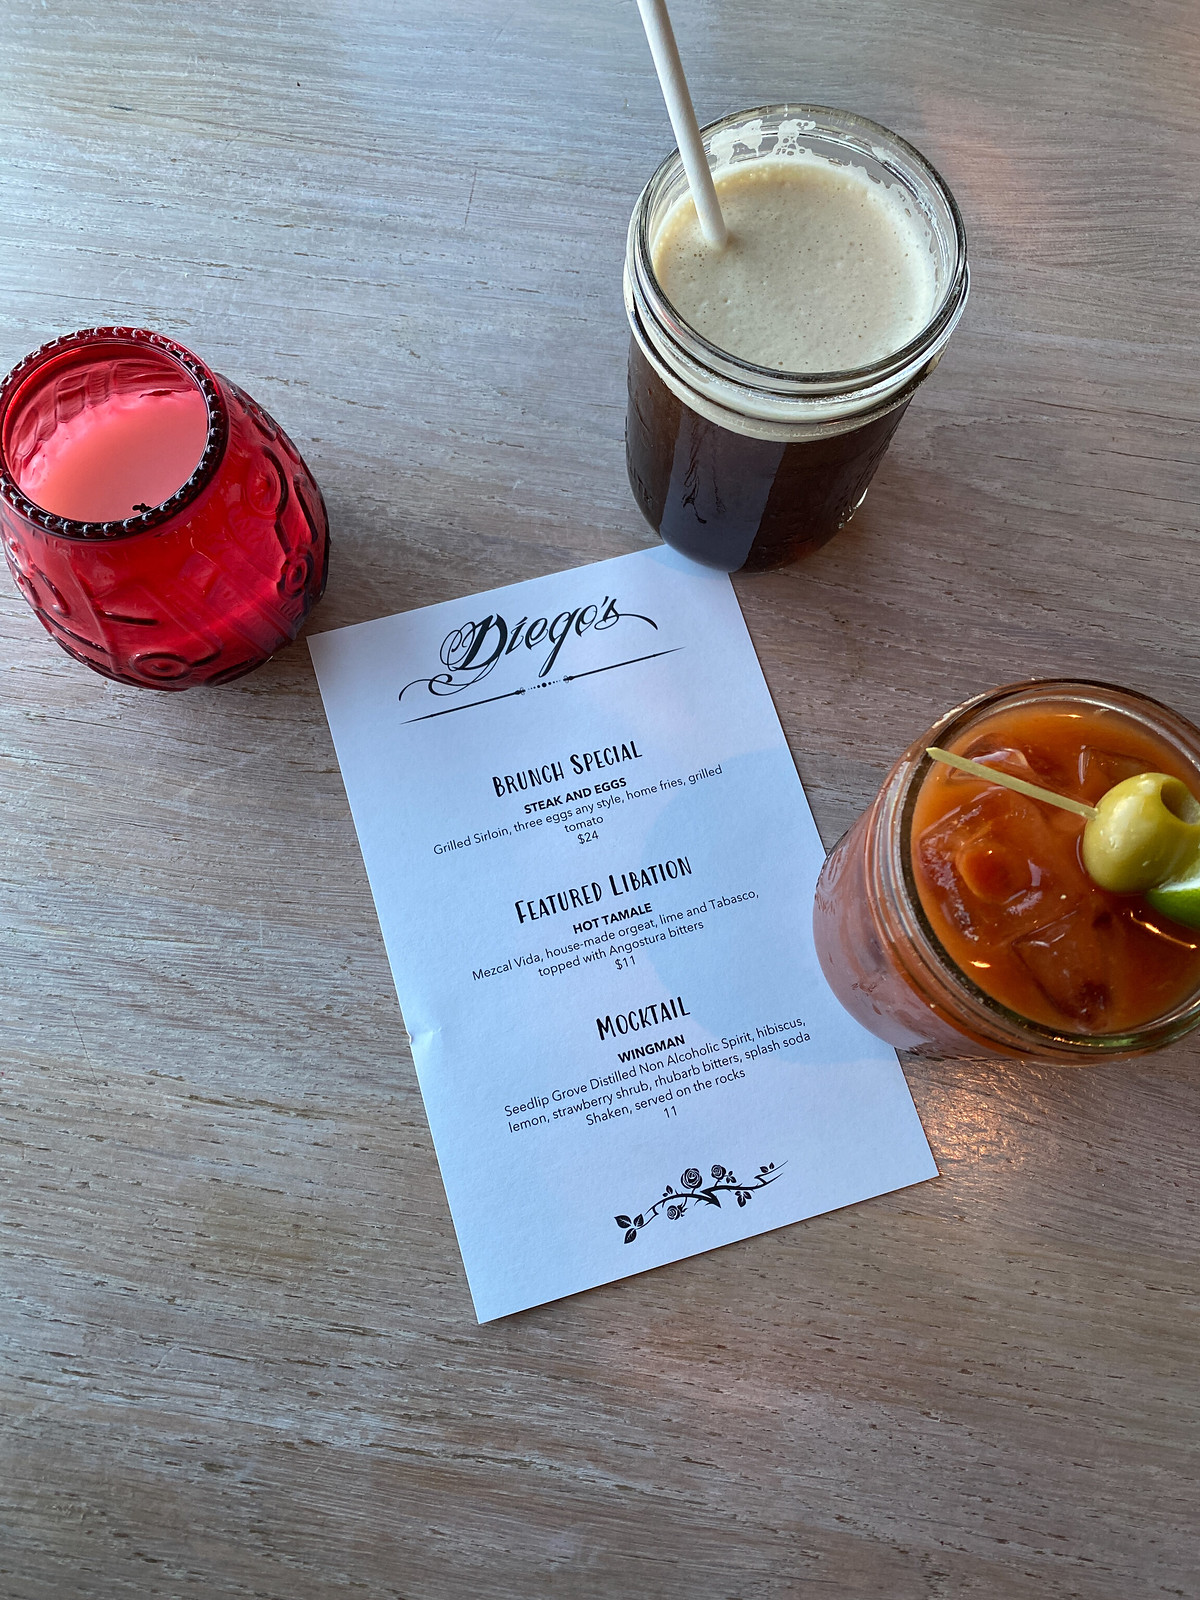 Diegos House Bloody Mary | Where to Eat in Newport | 48 Hours in Newport Itinerary | A First Timer's Guide to 2 Days in Newport Rhode Island | What to do in Newport | Newport Travel Guide | Best Things to do in Newport | Best Places to Visit in Newport